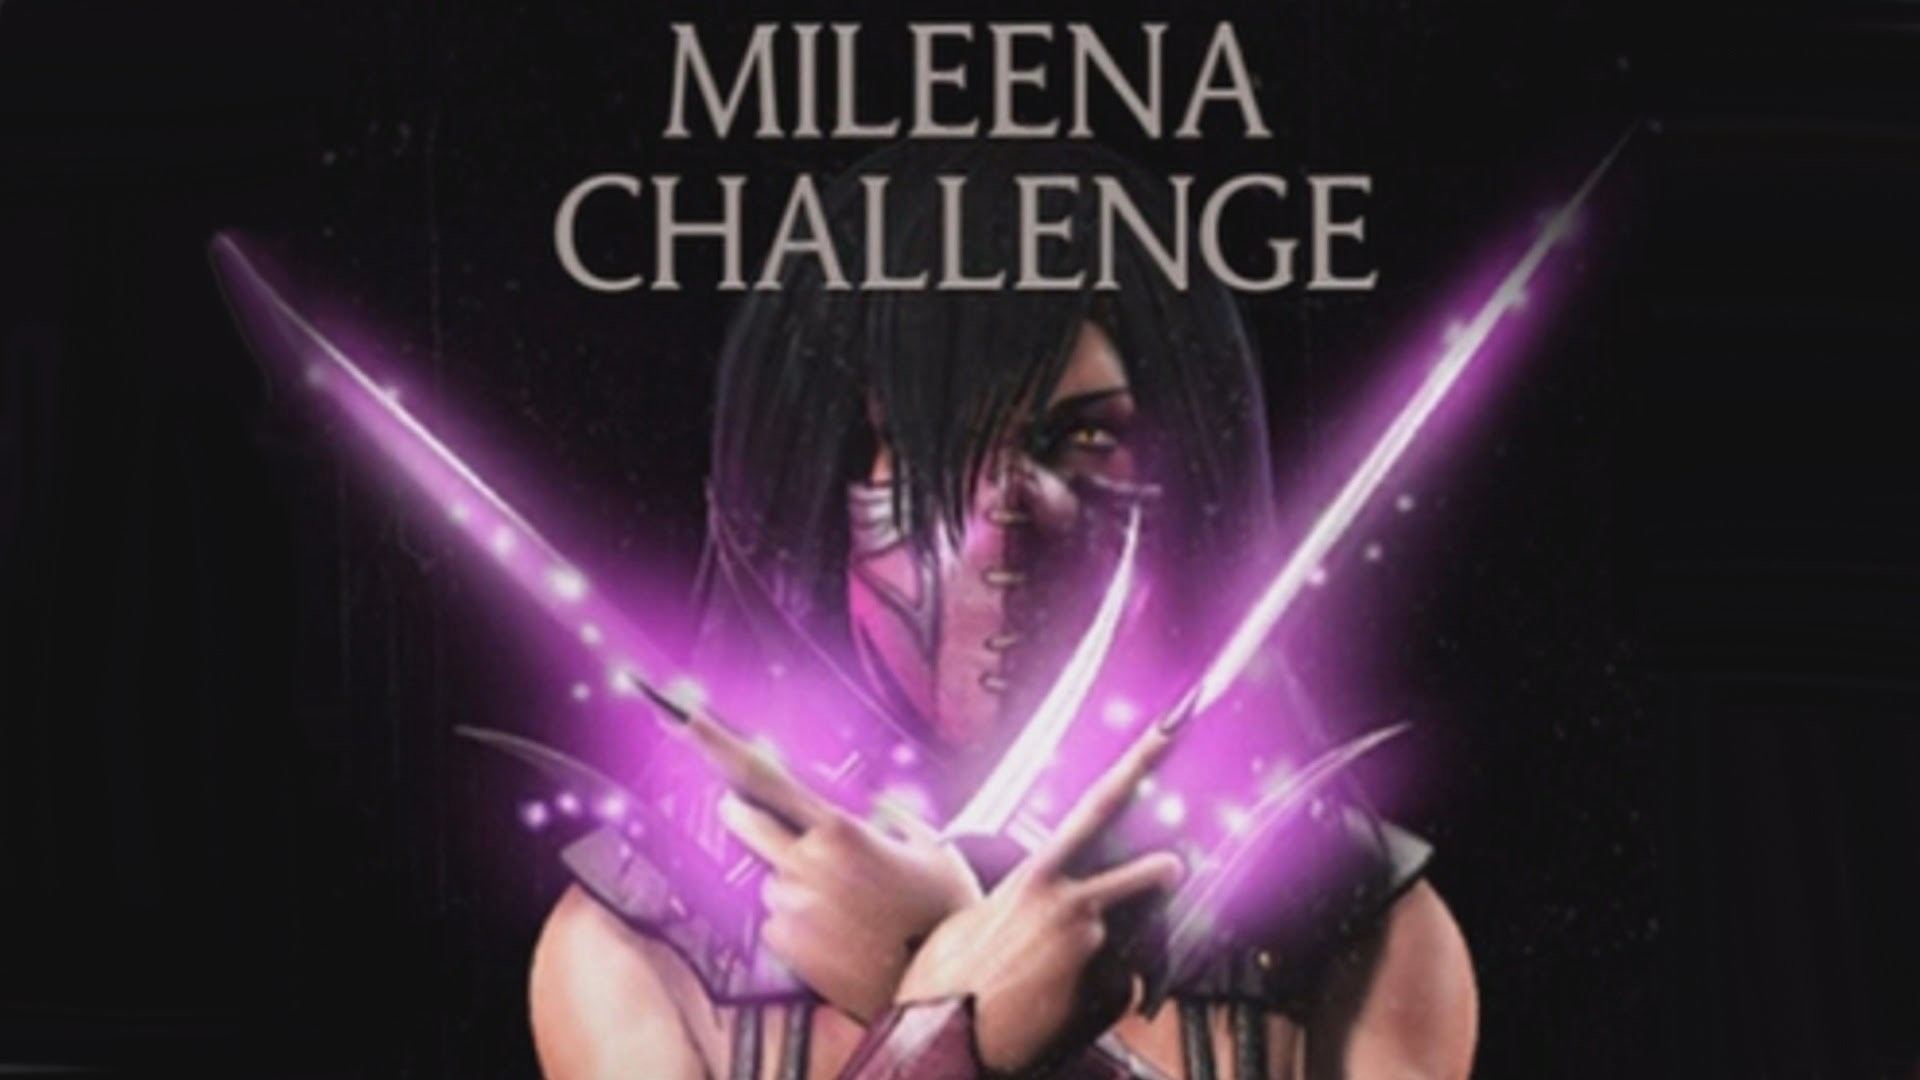 Mortal Kombat X (iOS/Android) MILEENA CHALLENGE Lets play Gameplay – YouTube